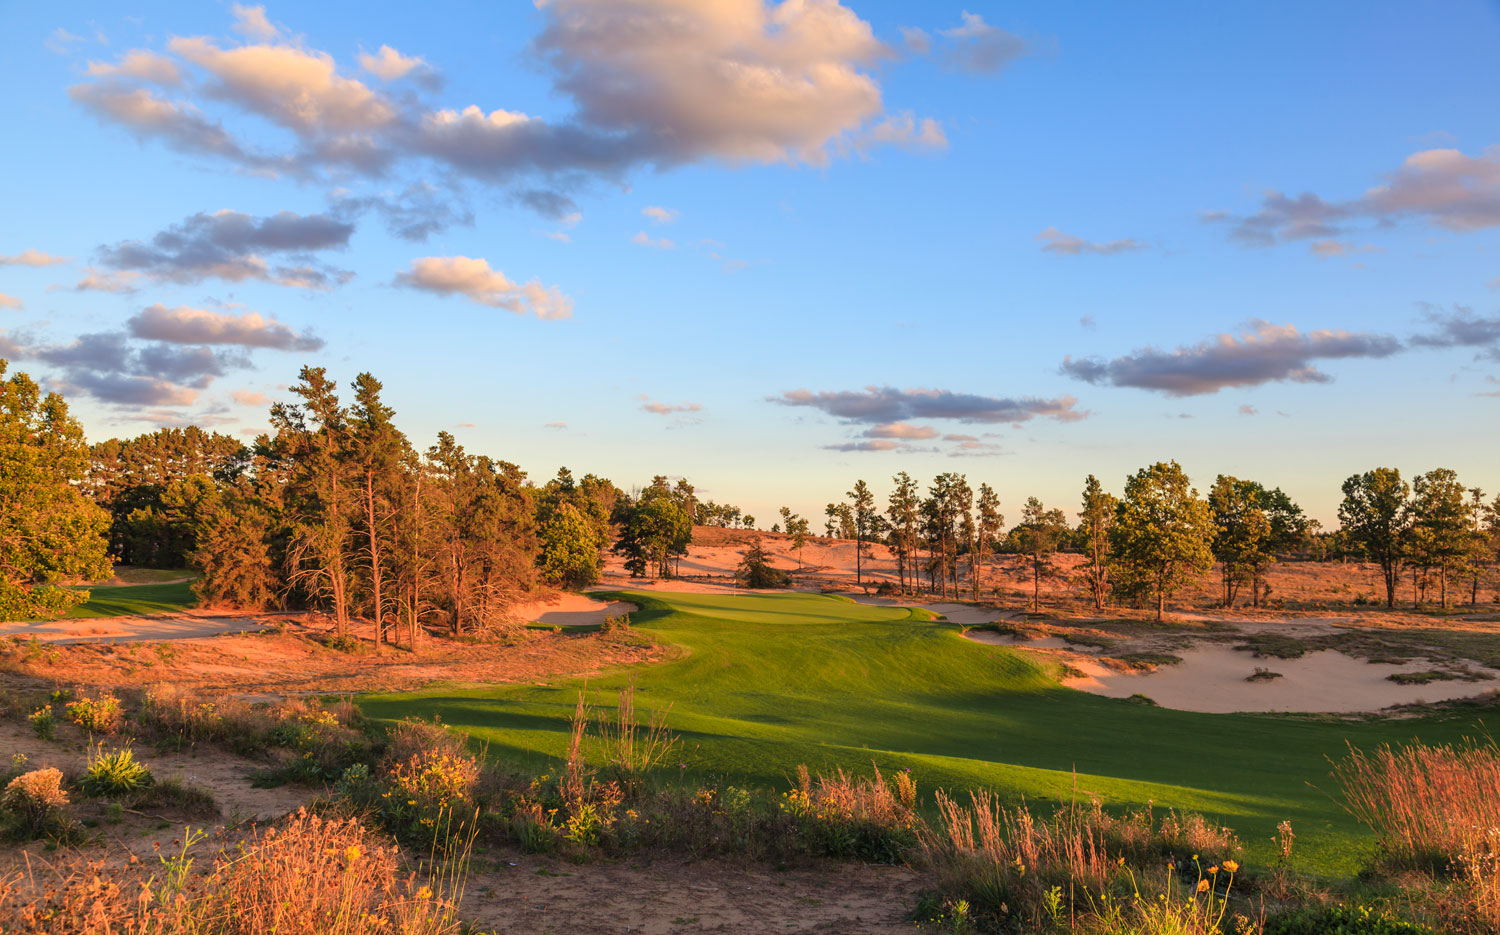 Sand Valley is one of the newest golf resorts to arrive on the scene from KemperSports.